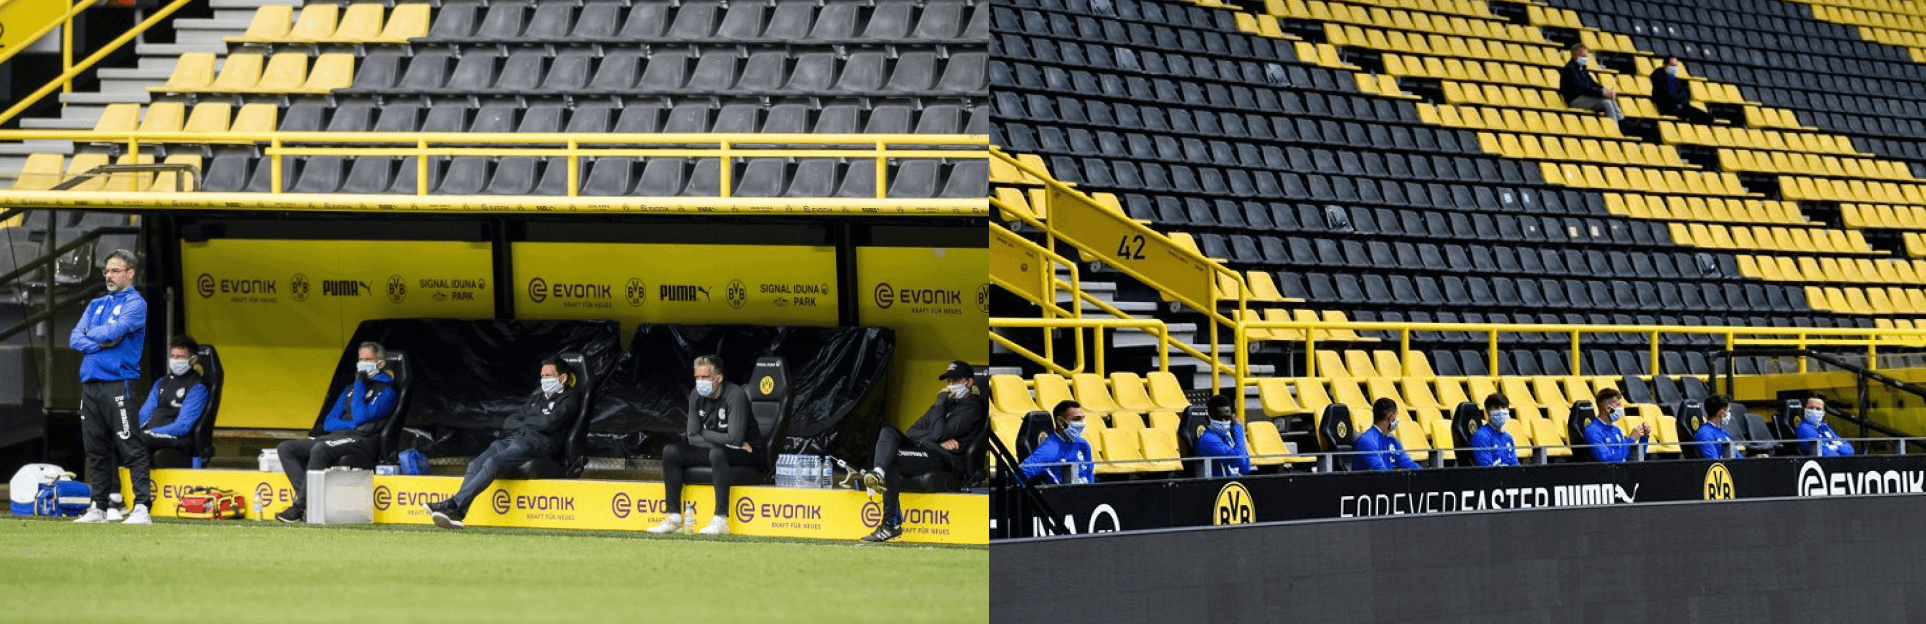 fanless seats show opportunity for sports sponsors